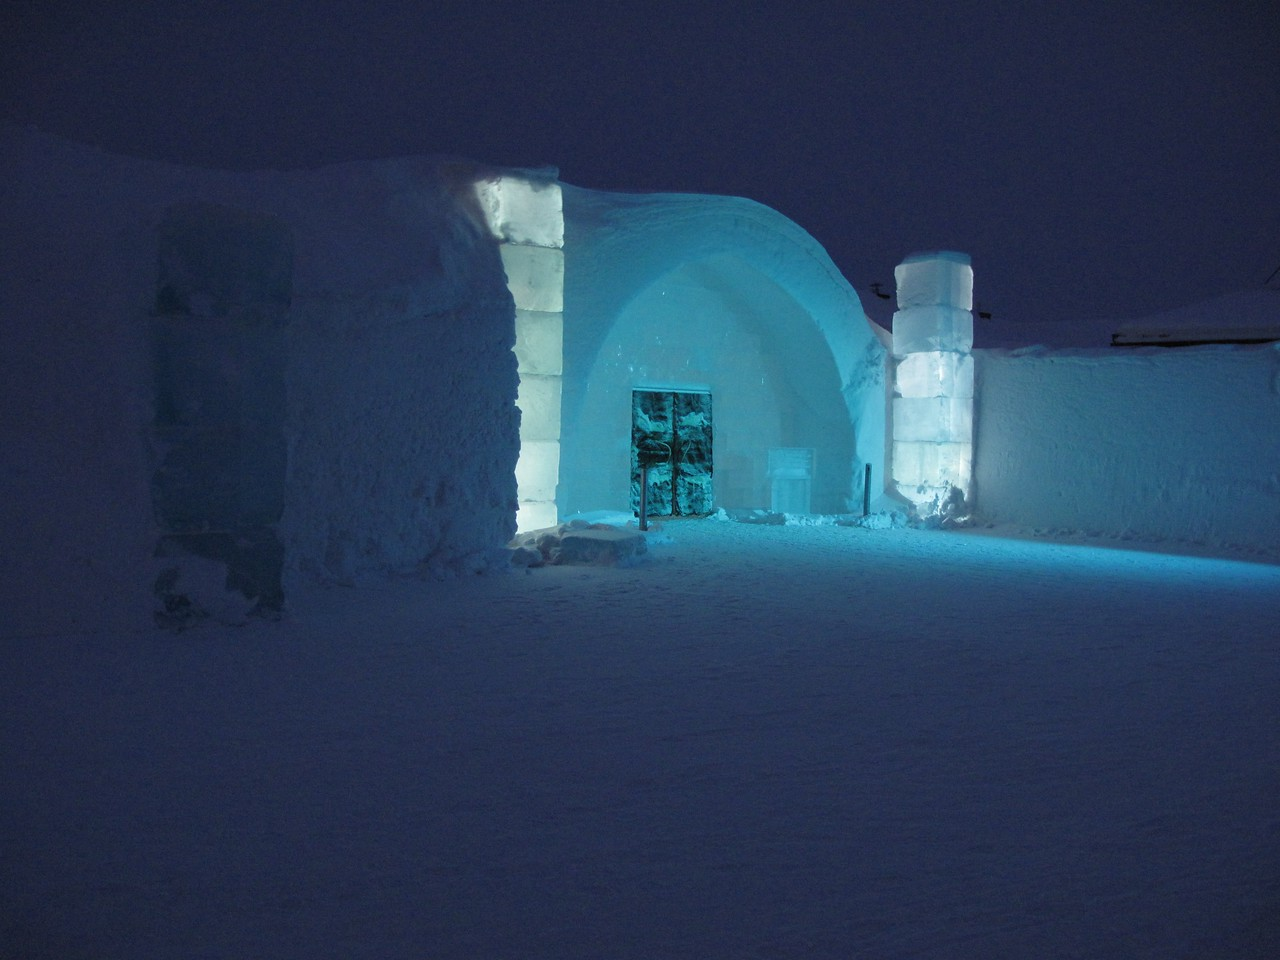 Ice Hotel entrance at night.